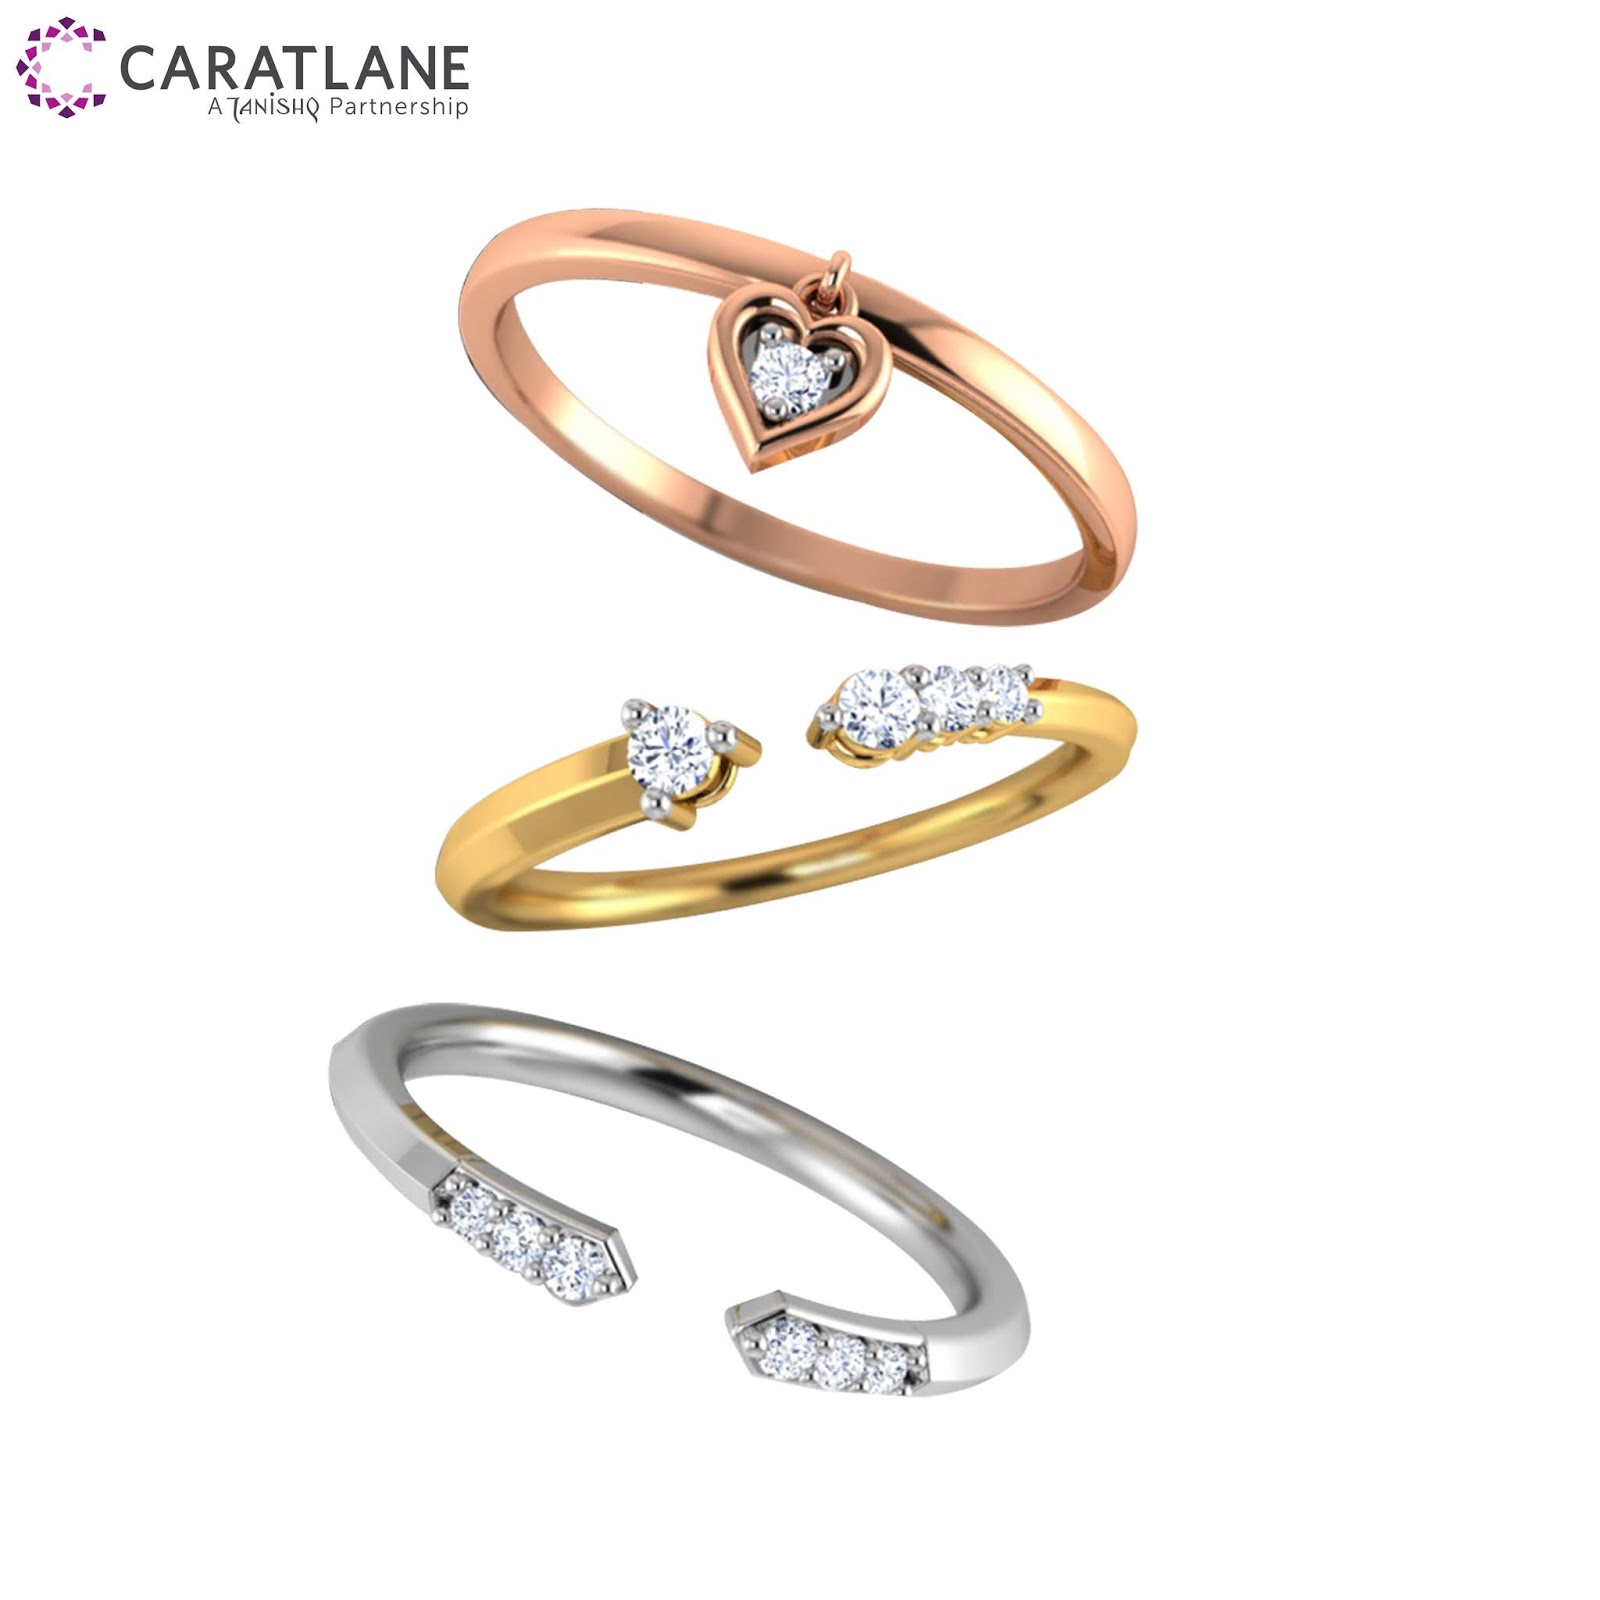 7b7124146e221 Caratlane Presents Jewellery Trend: Stackable Rings